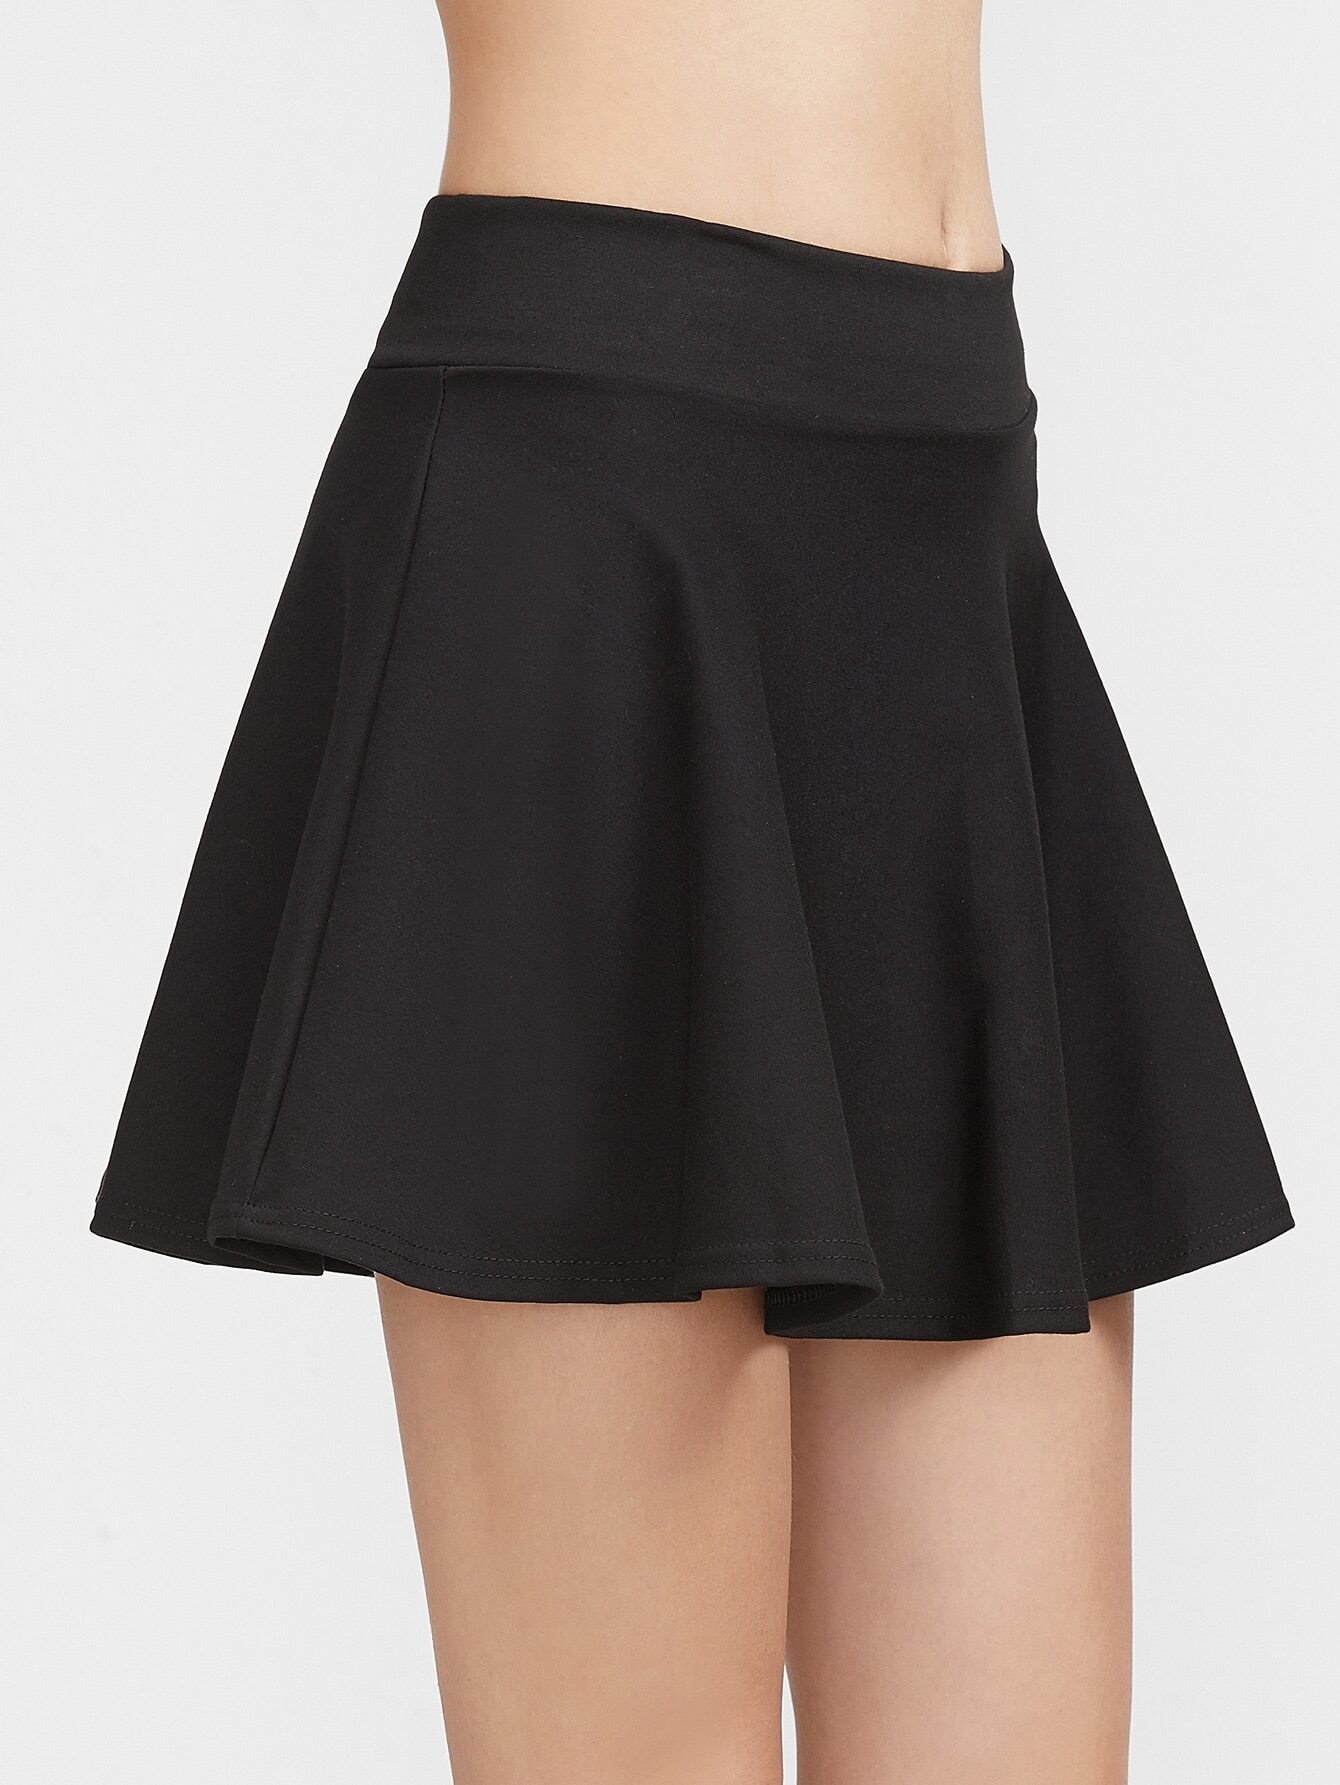 AWBMSBLACK-S Basic plain mini skirt. PERSUN Women's Faux Suedettte Button Closure Plain A-Line Mini Skirt. by PERSUN. $ - $ $ 14 $ 17 99 Prime. FREE Shipping on eligible orders. Some sizes/colors are Prime eligible. out of 5 stars